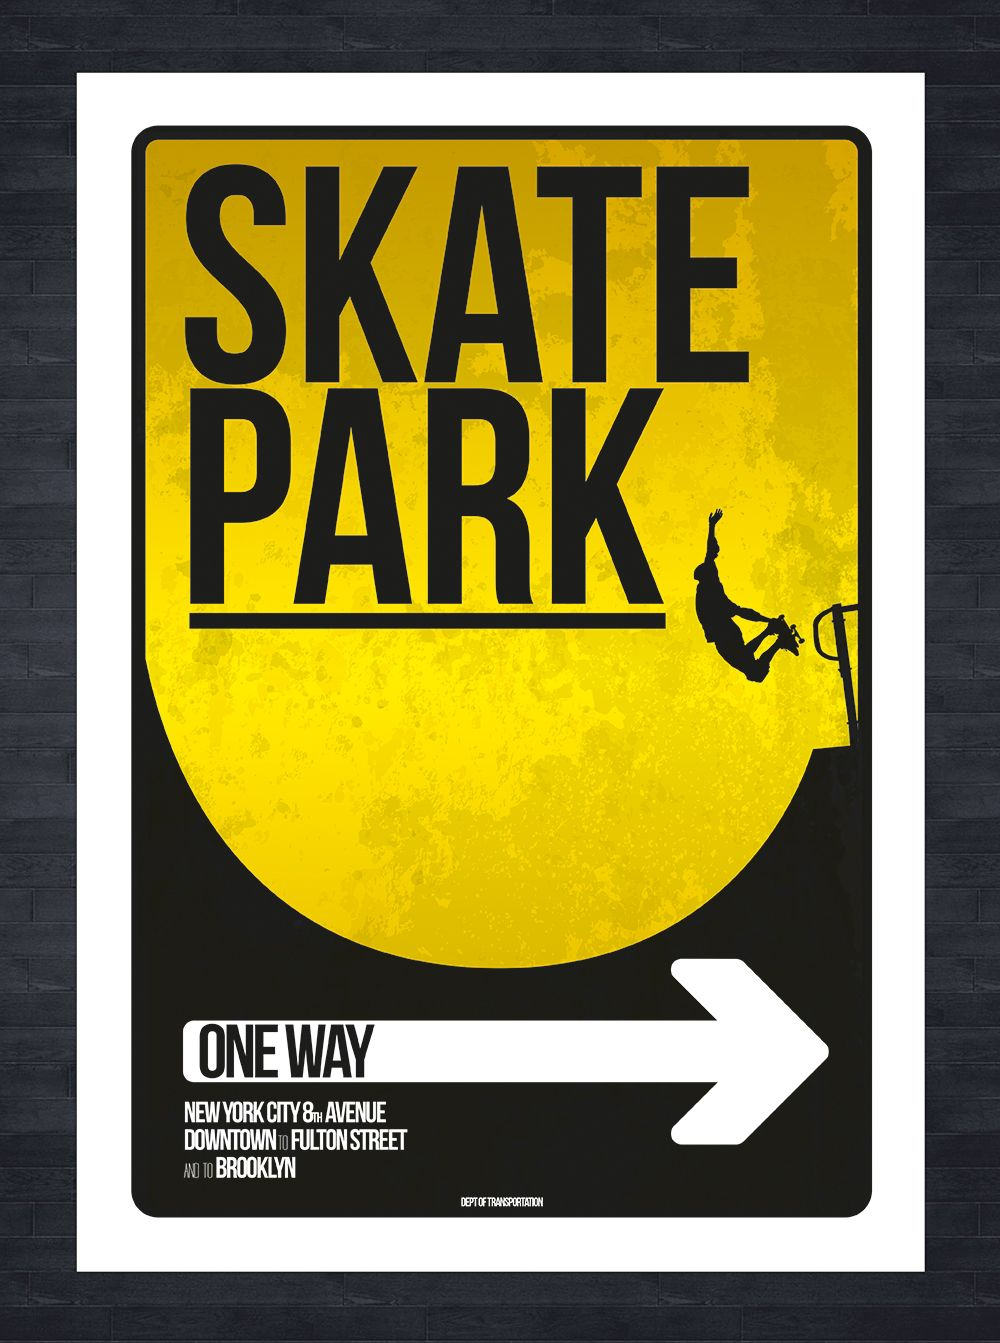 Skate Park Skateboard Sign Inspired By The New York Street Signs Vector Artwork Created In Adobe Illustrator Skate Park Park New York Street